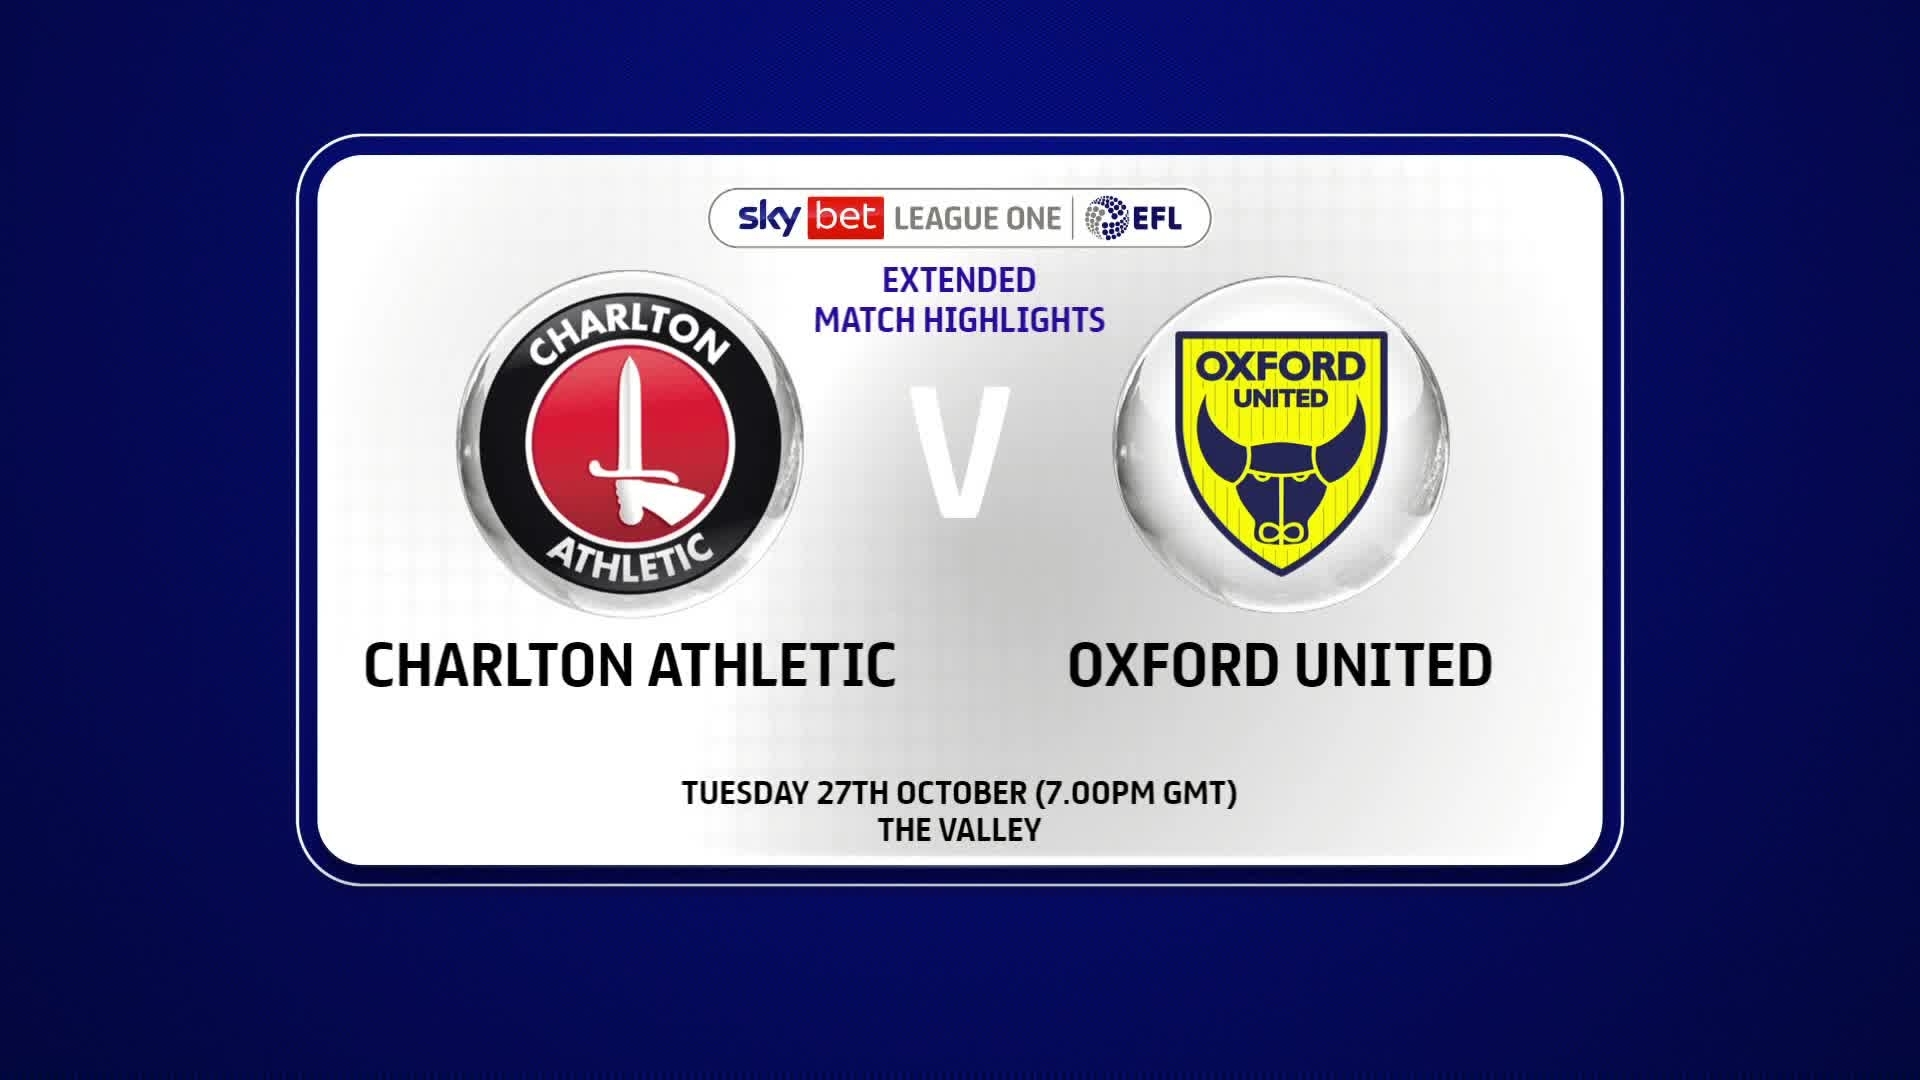 EXTENDED HIGHLIGHTS | Charlton 2 Oxford Utd 0 (October 2020)